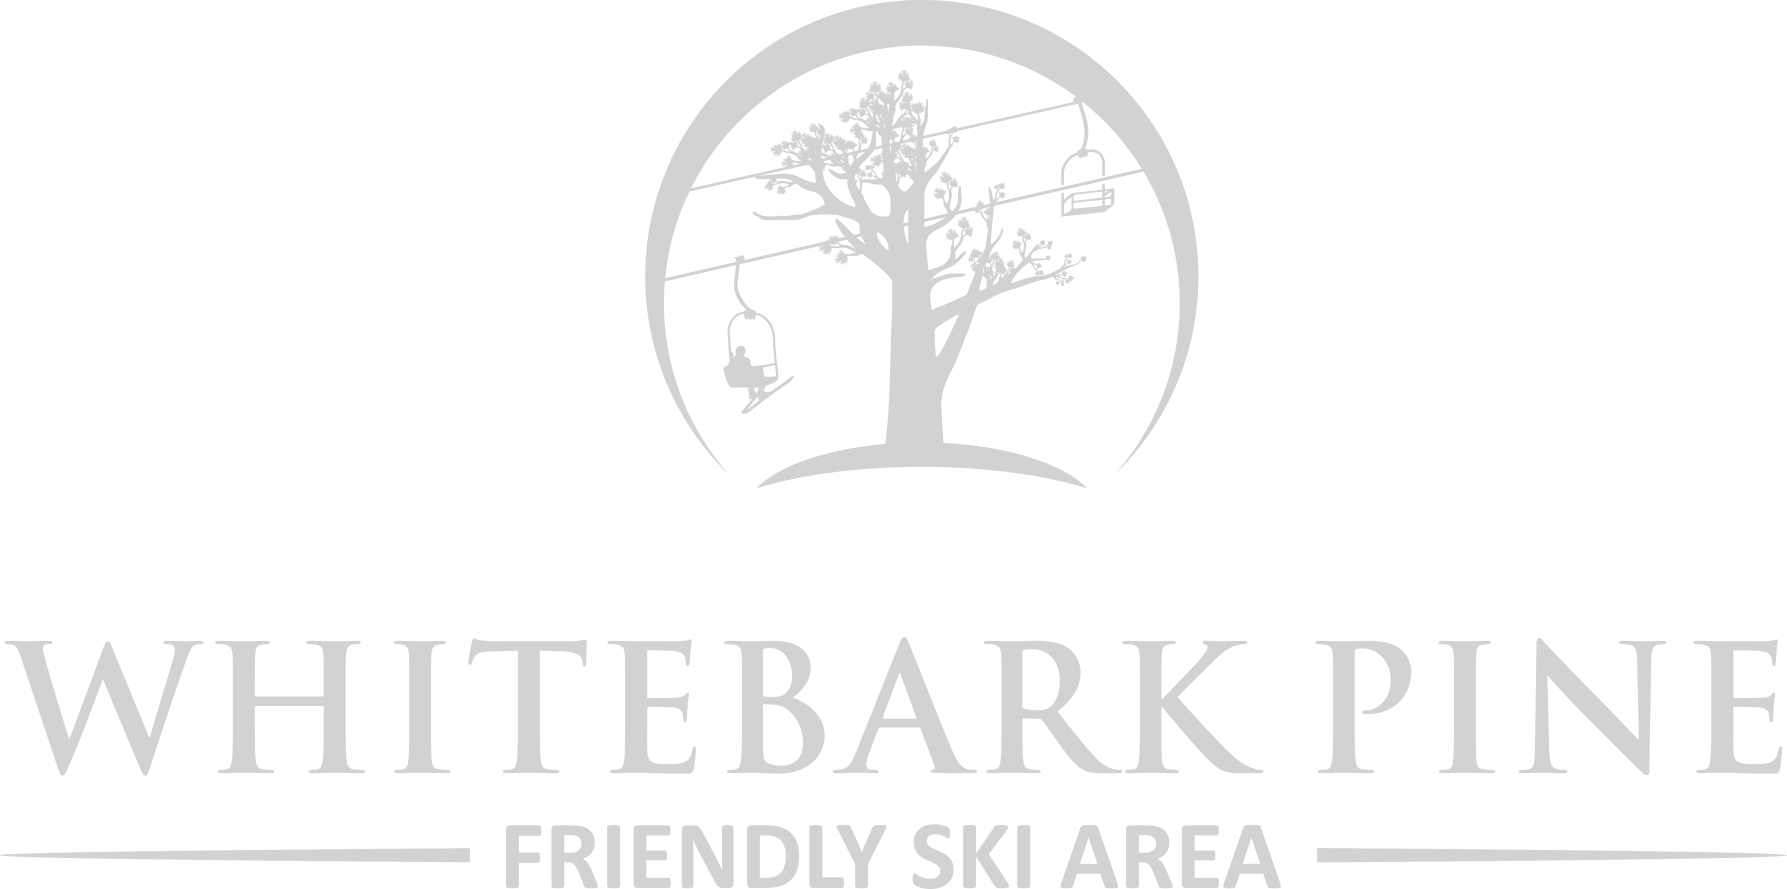 Whitebark Pine Friendly Ski Area